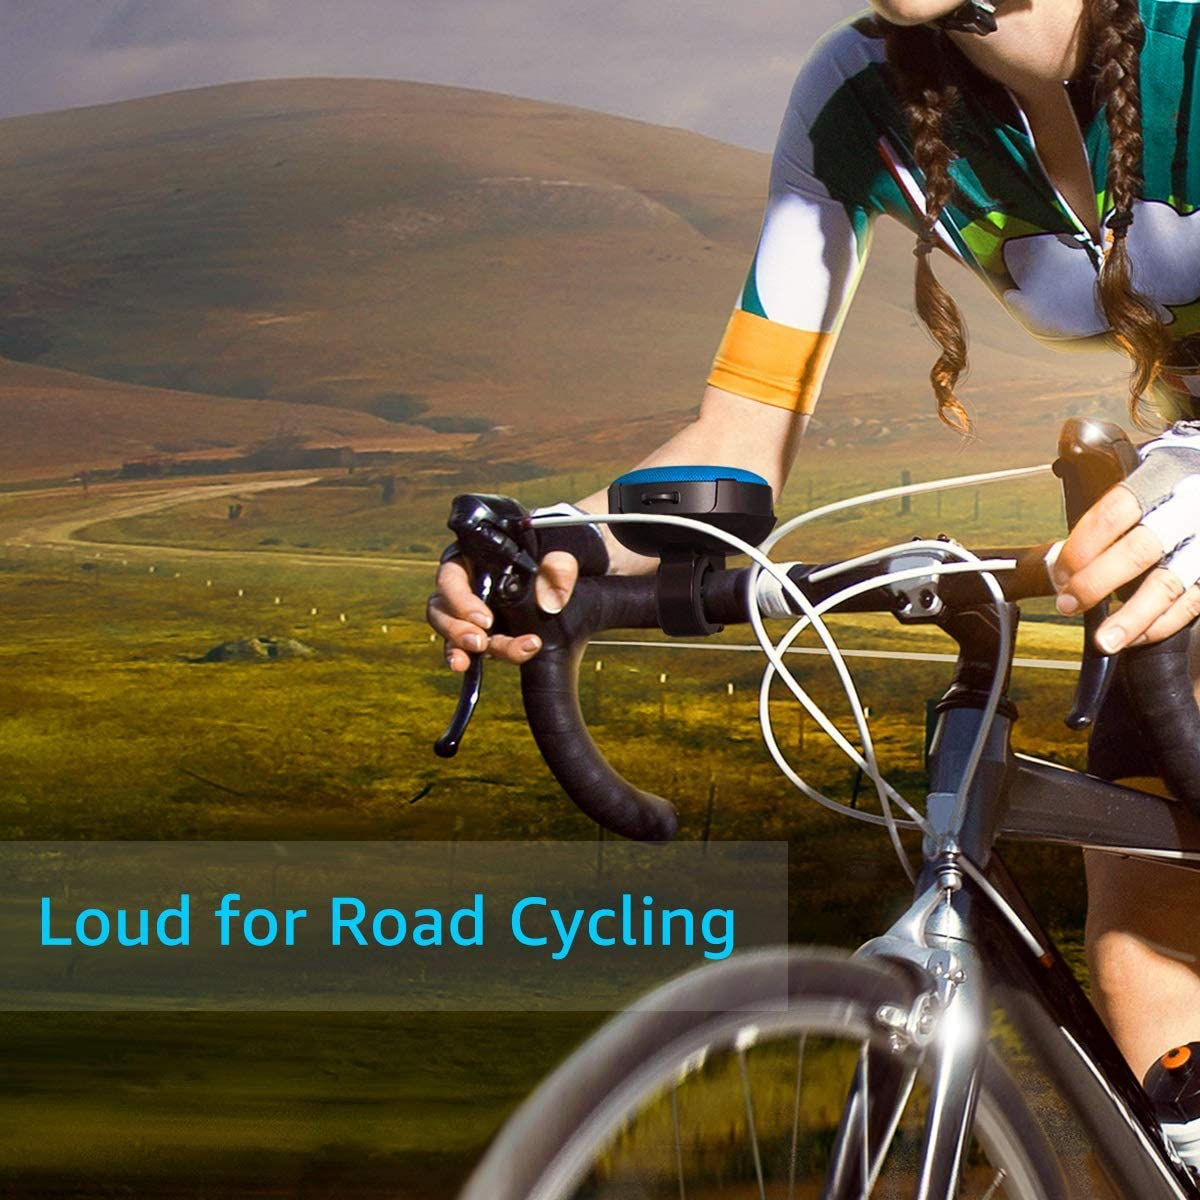 IPX7 Waterproof Olafus Bluetooth Bike Speaker with Detachable Bicycle Mount Built-in Mic 10H Playtime Bluetooth 5.0 HD Sound Shockproof Dustproof for Outdoor Riding